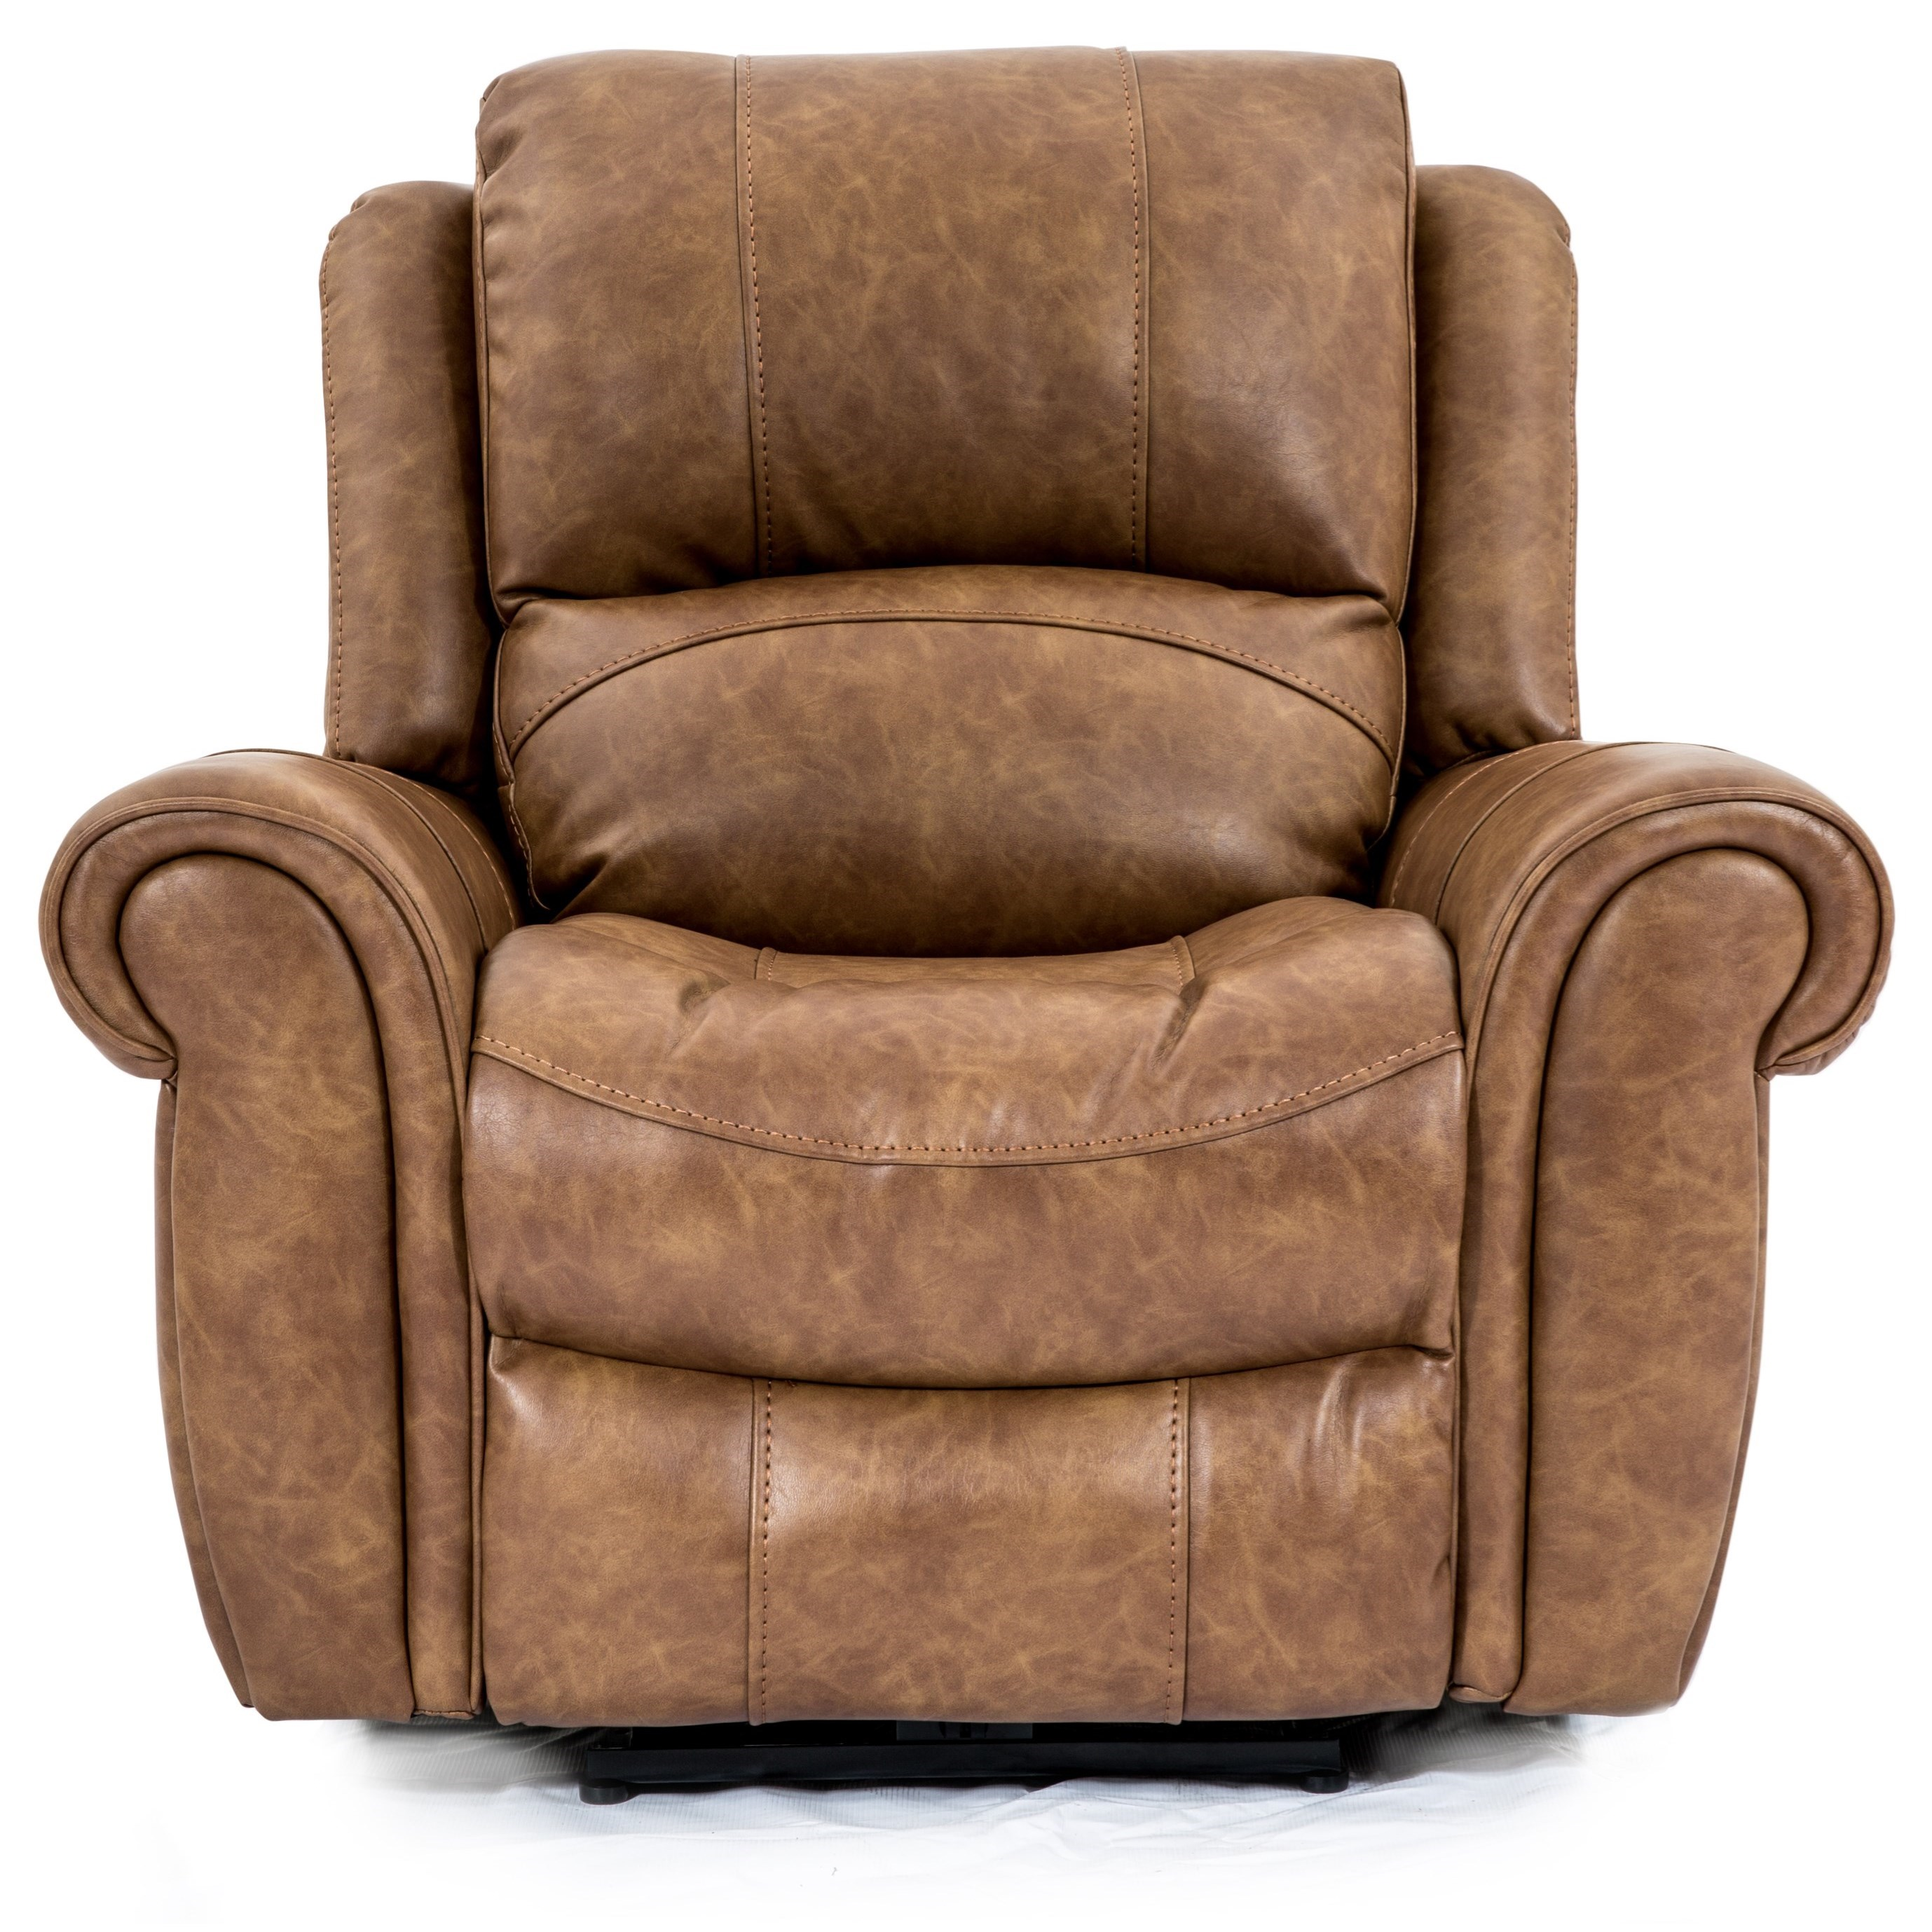 5175M Power Recliner by Cheers at Lagniappe Home Store